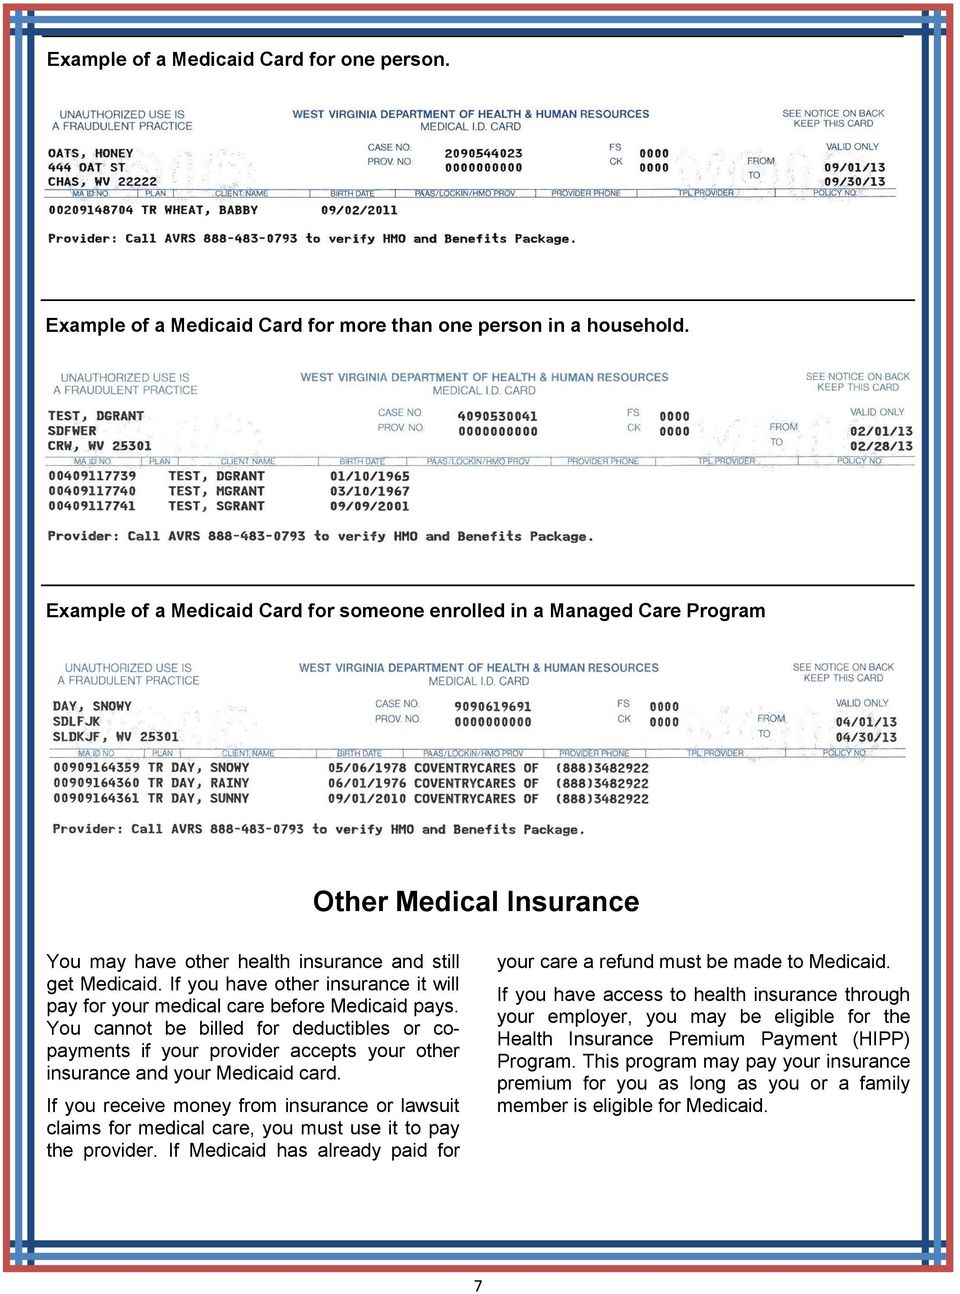 If you have other insurance it will pay for your medical care before Medicaid pays.